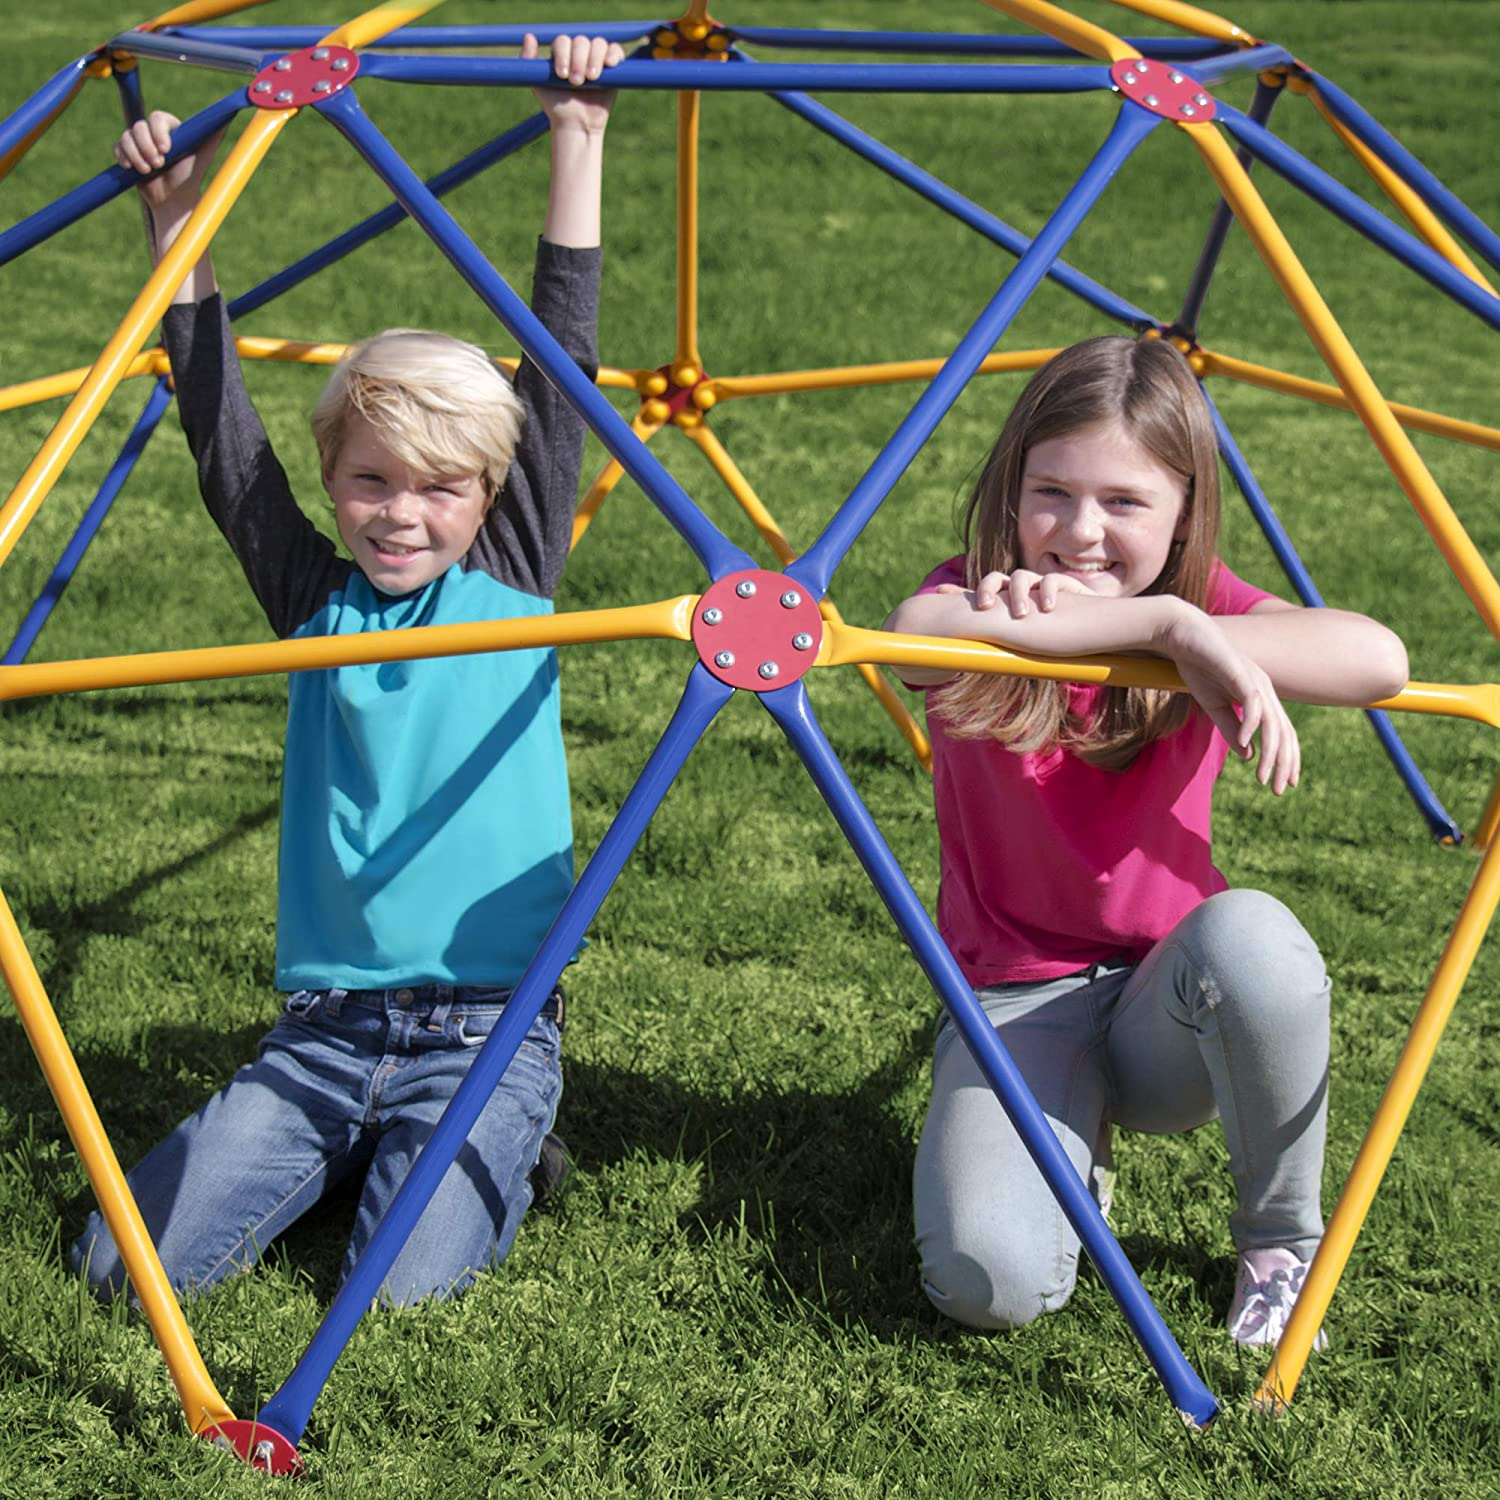 Easy Outdoor Space Dome Climber 1000lb For Kids Ages 3 to 9 Rust and UV Resistant Steel Renewed Capacity